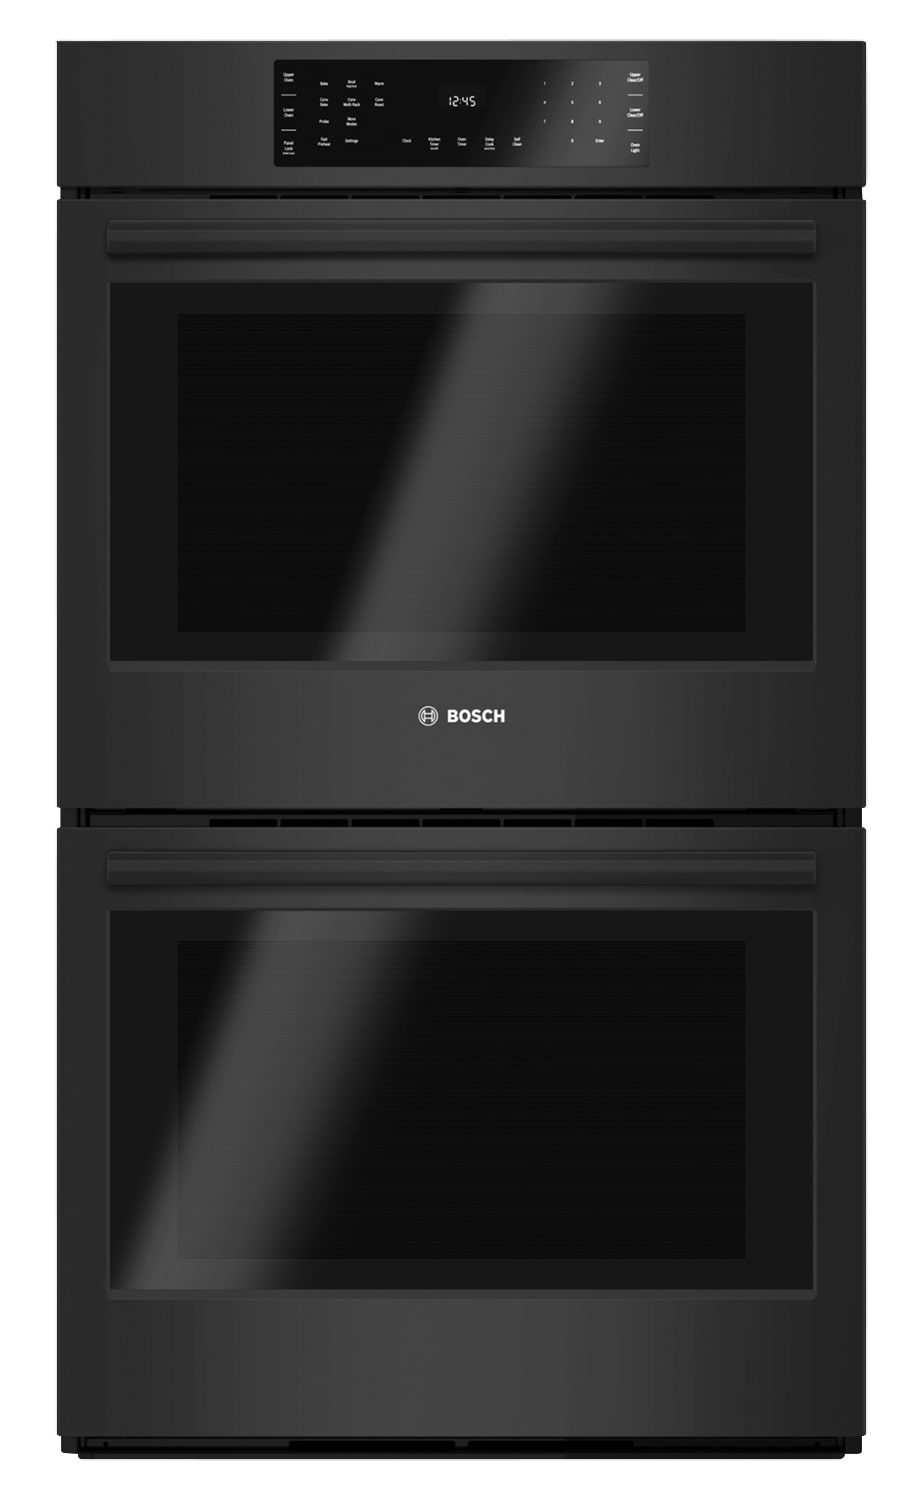 Bosch 800 Series 5.6 Cu. Ft. Double Wall Oven – HBL8661UC